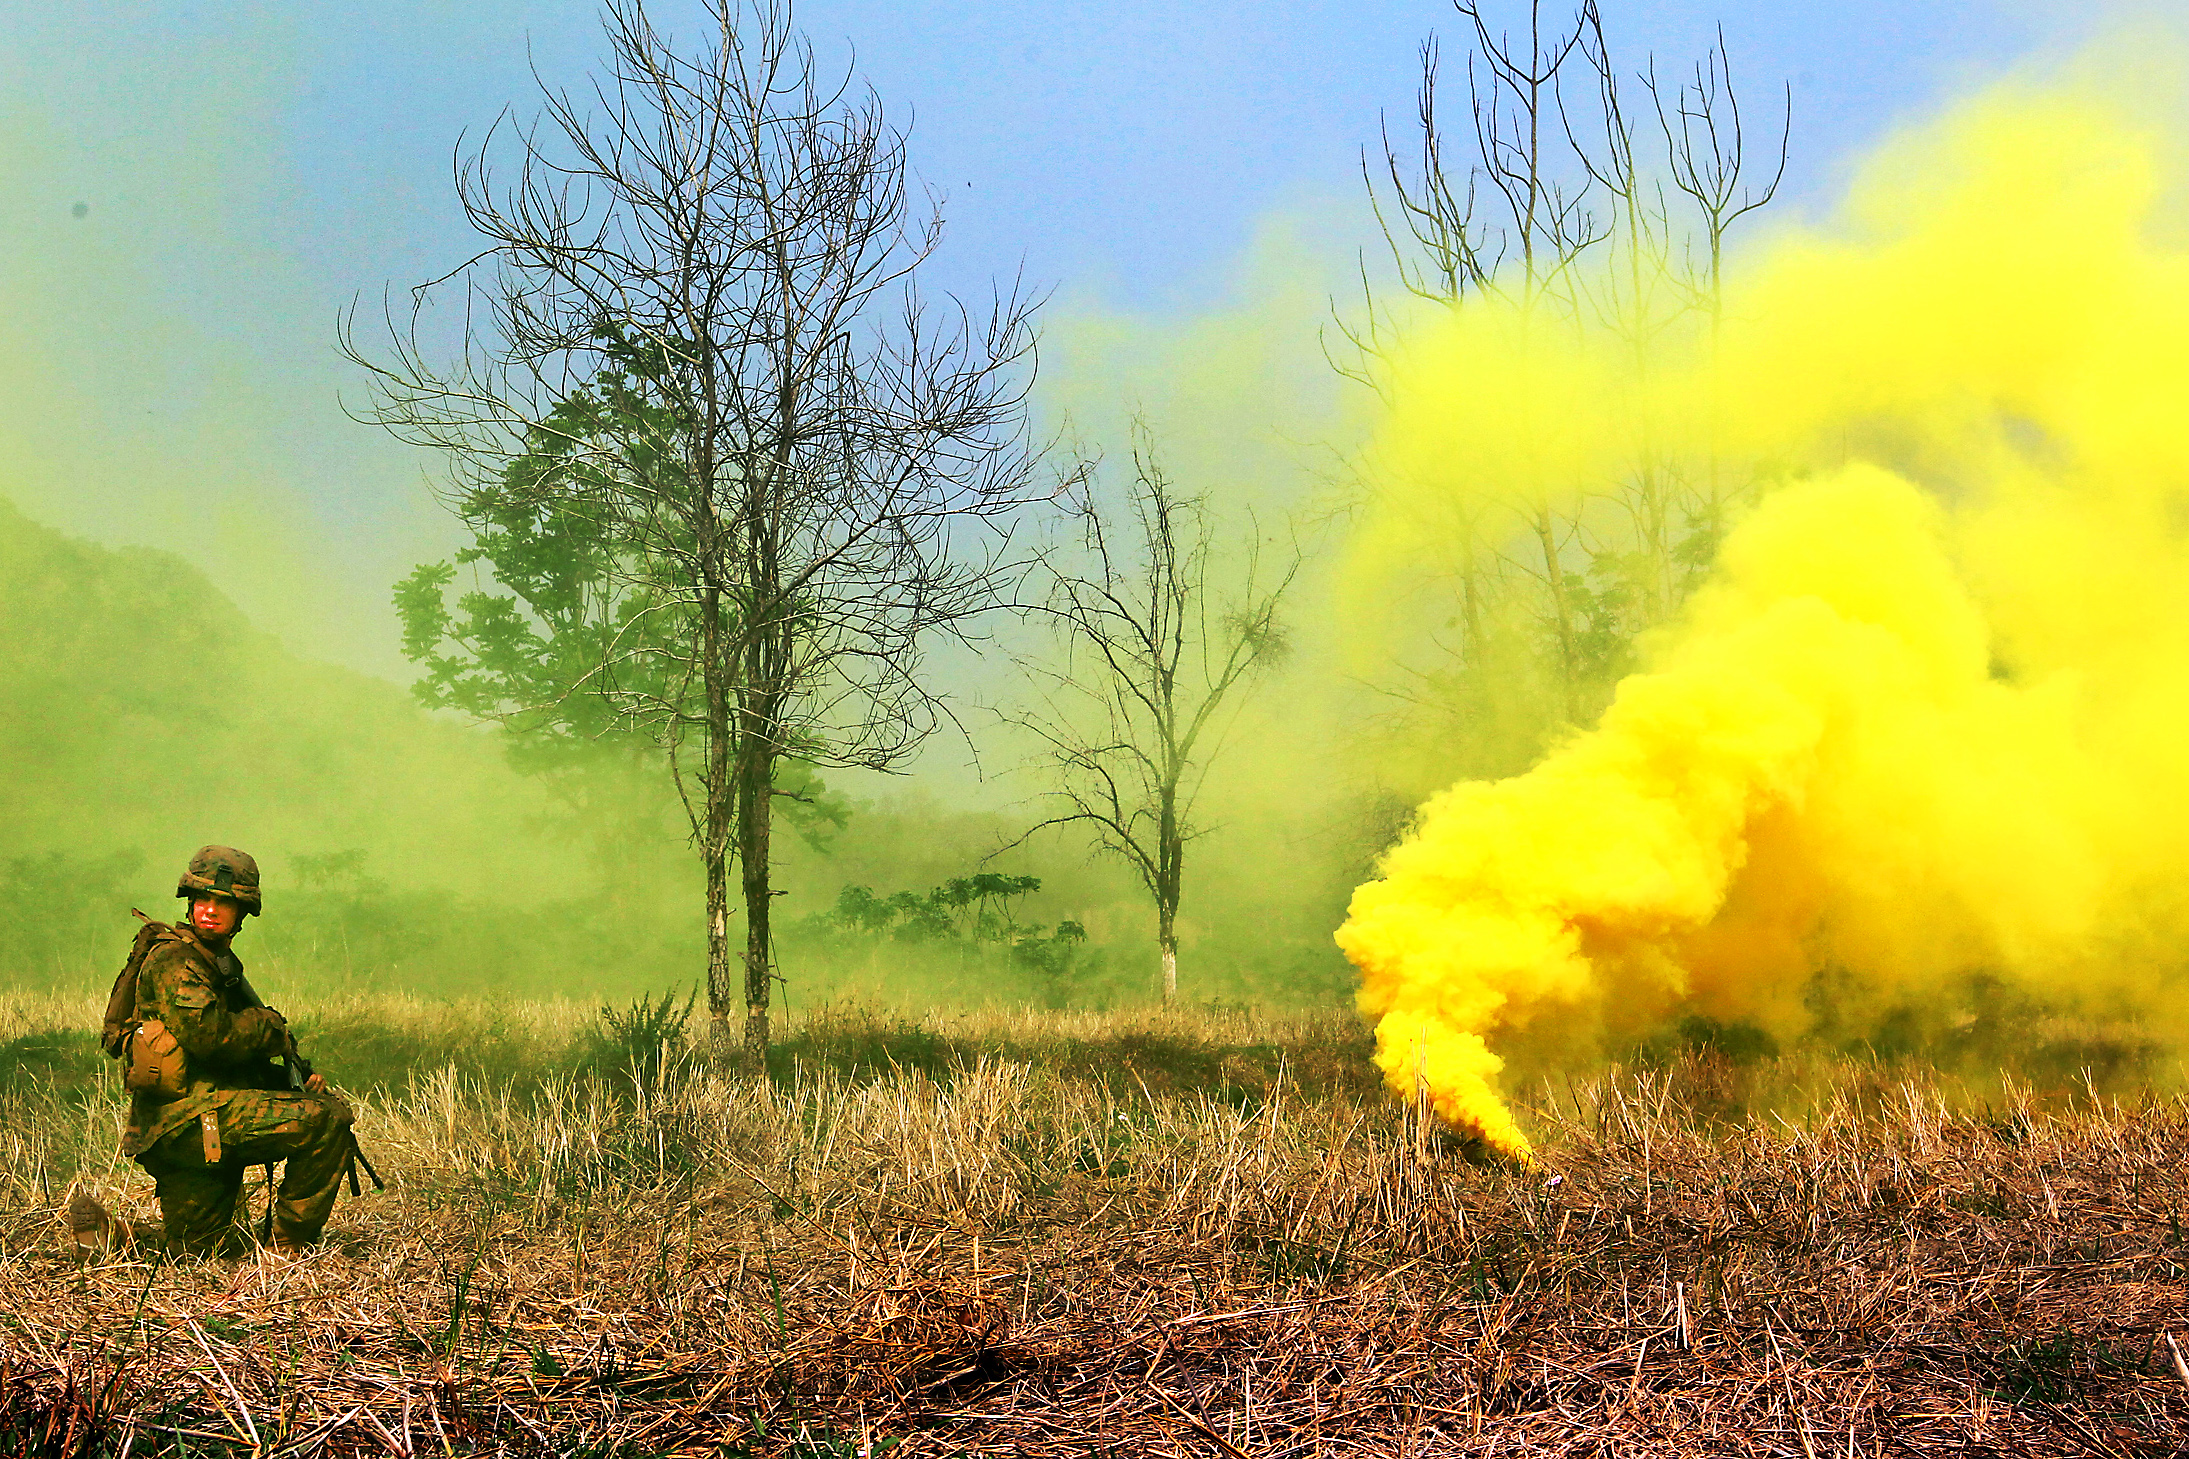 A U S  Marine provides security as yellow smoke signals supporting